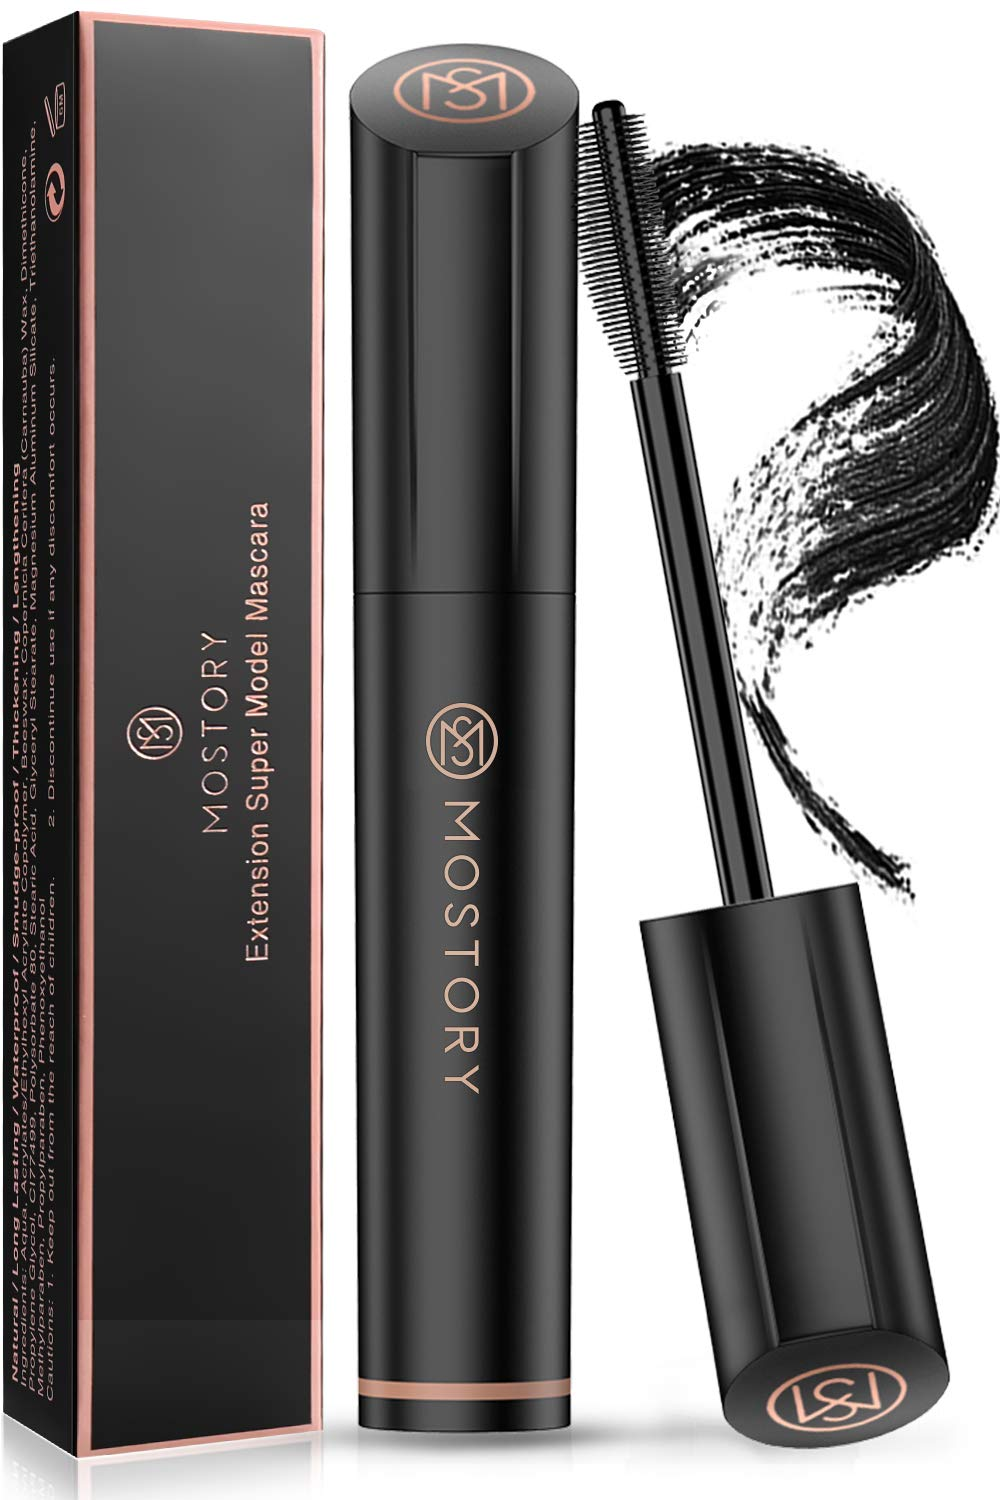 MOSTORY Black Lash Mascara - 4D Silk Fiber Volume Waterproof Natural Extension Mascara